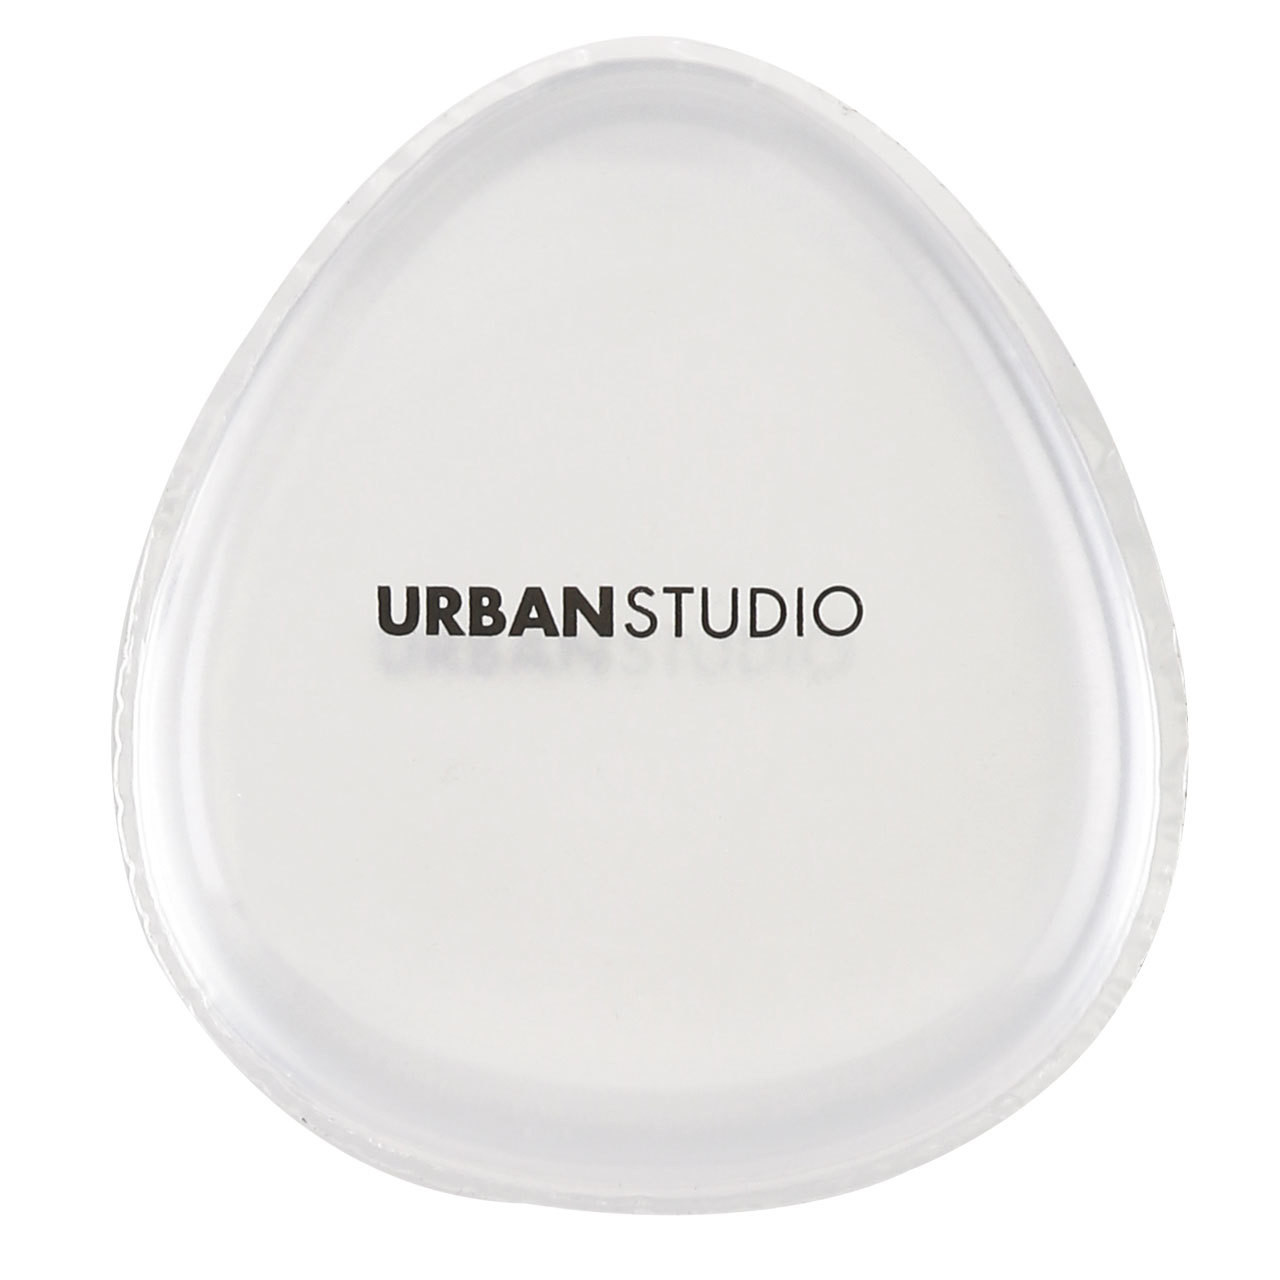 CALA URBAN STUDIO SILICONE MAKE-UP BLENDER 76113